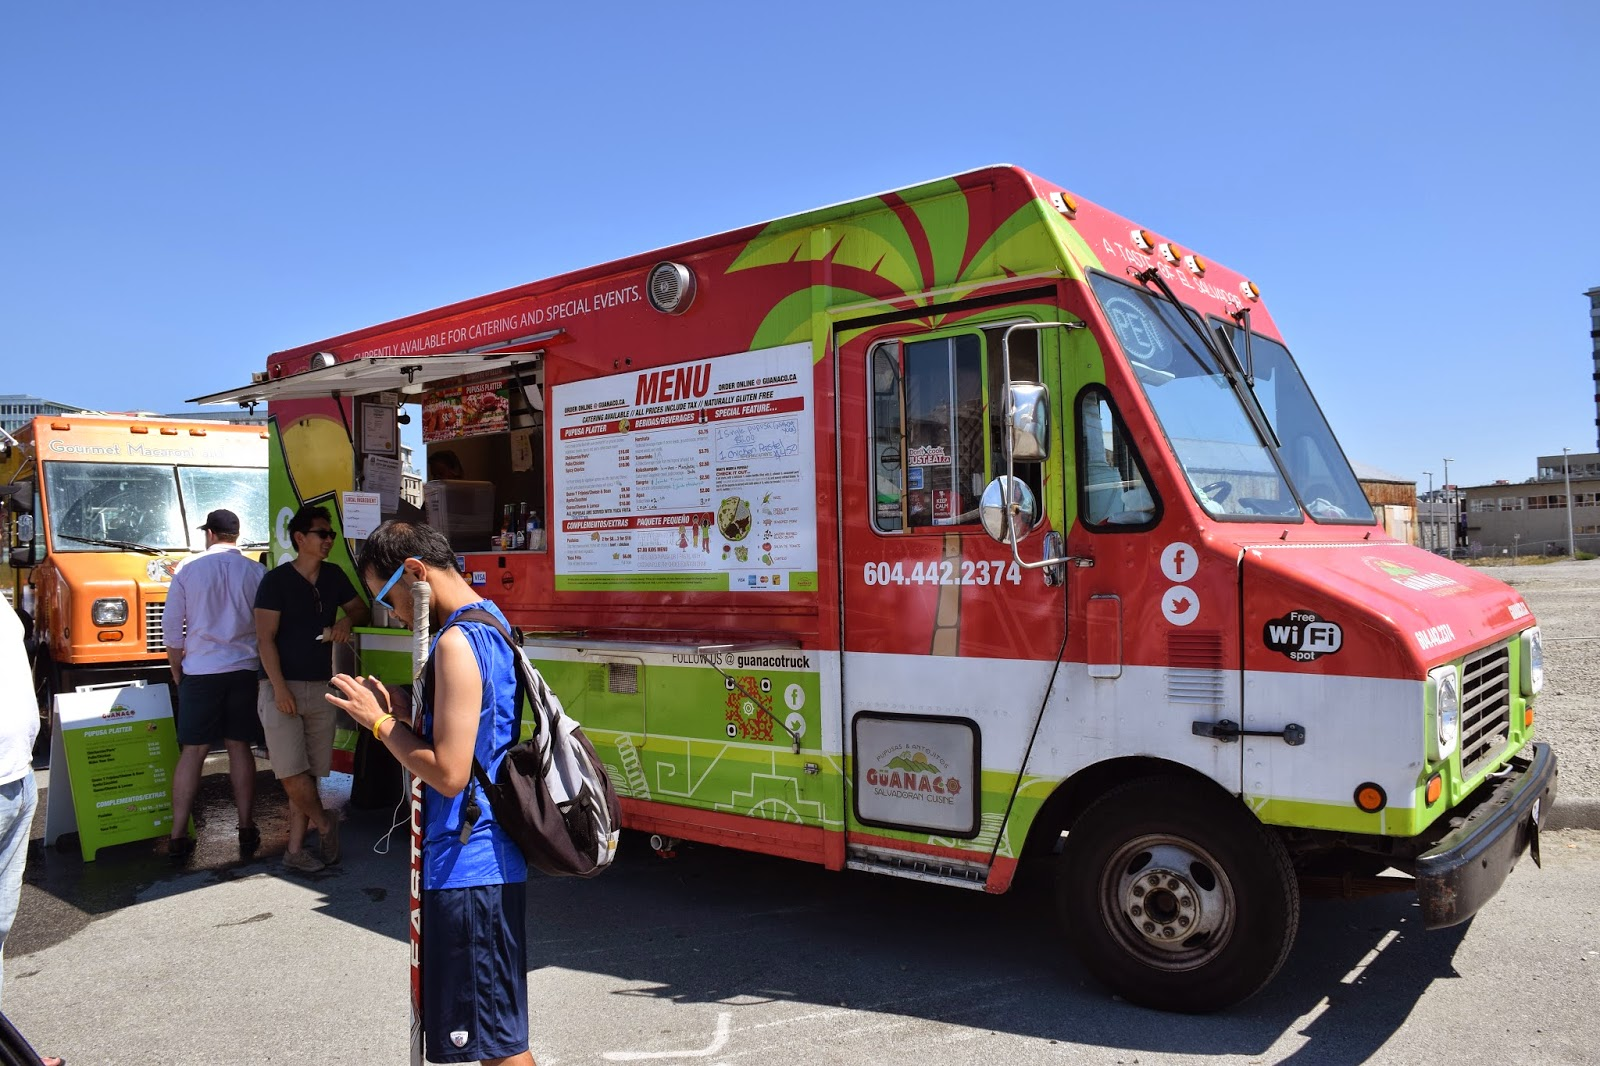 Check out my previous review of guanaco here http www vancitynoms com 2014 07 guanaco food truck html